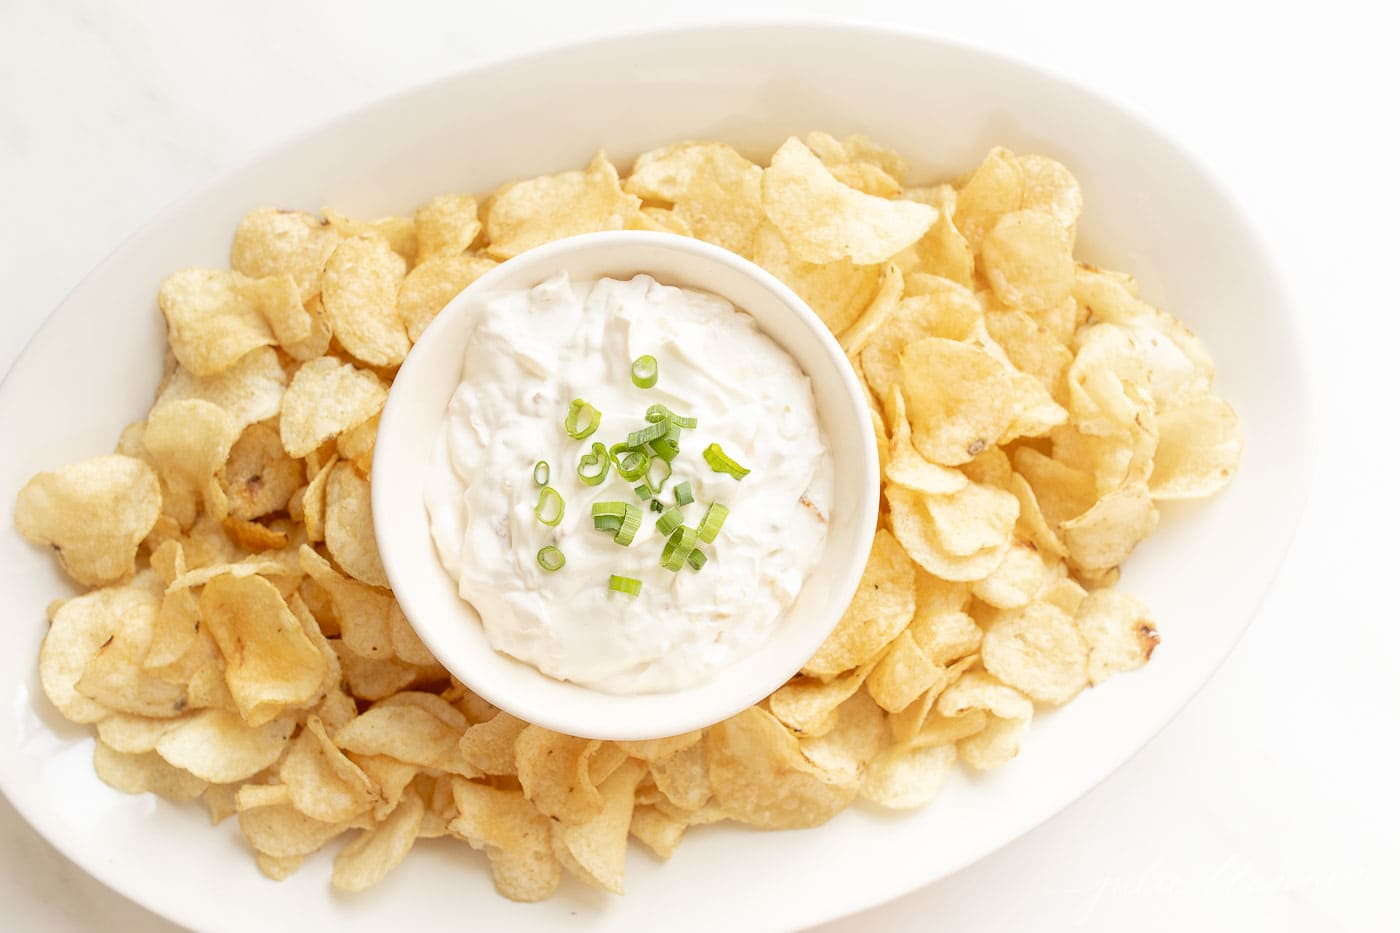 sour cream dip on a platter surrounded by chips